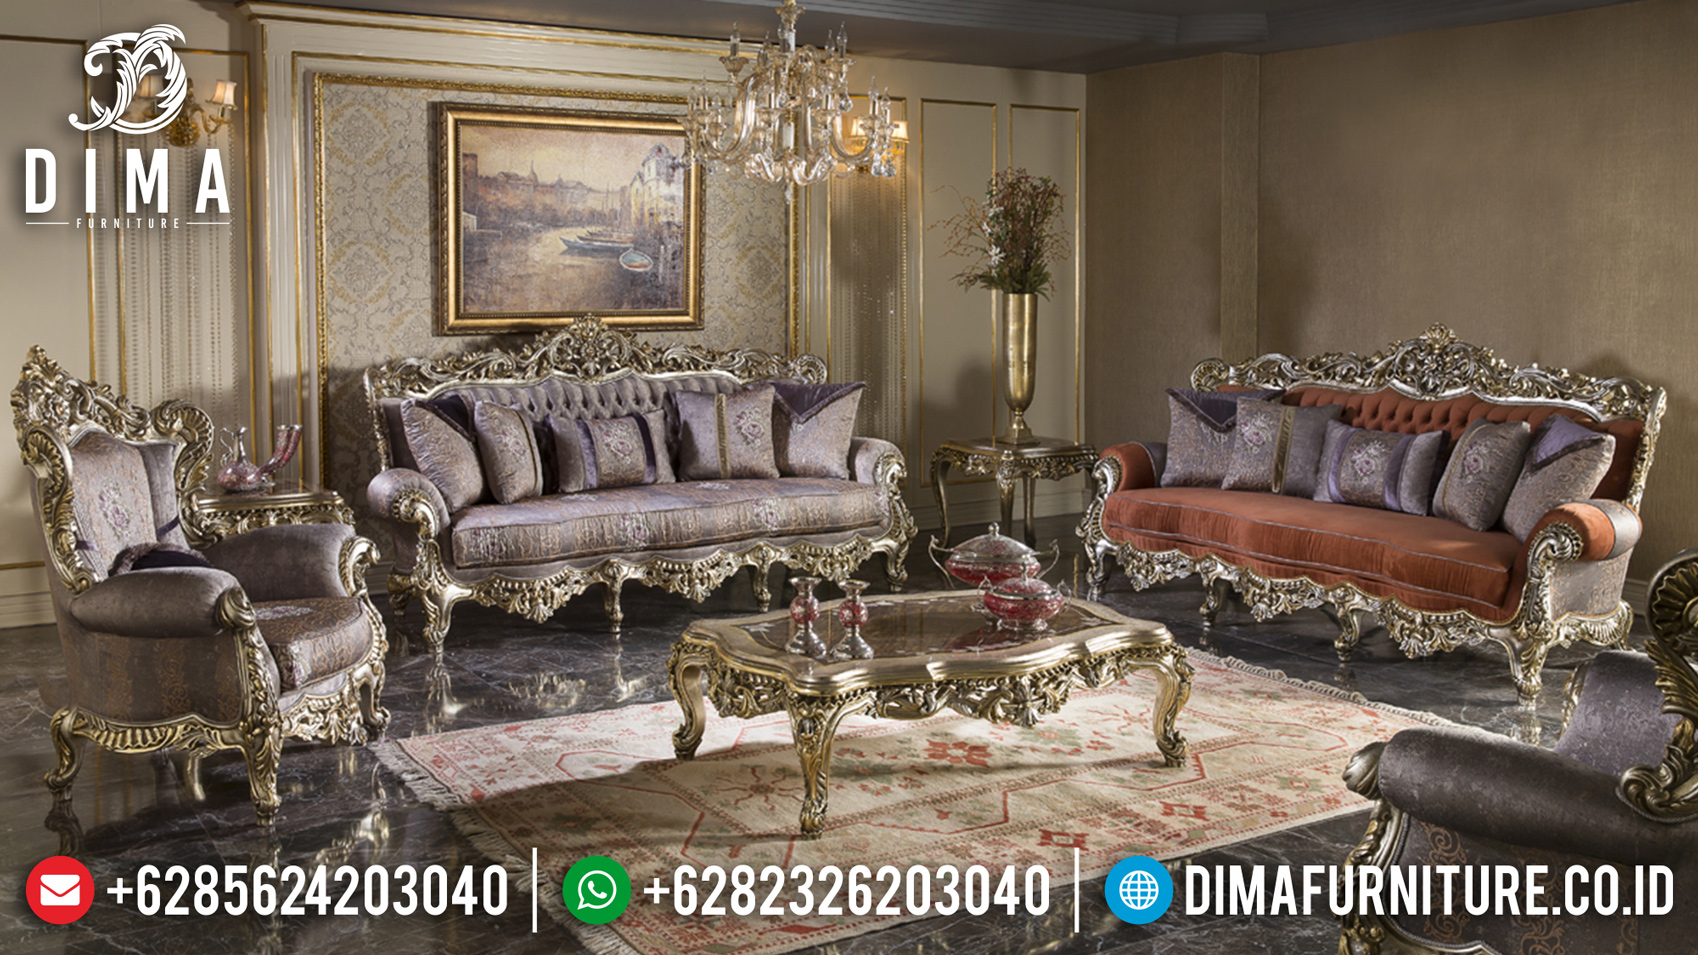 Full Ukiran Klasik Set Sofa Tamu Jepara Mewah Klasik Model Lunema Turkey BT-0009